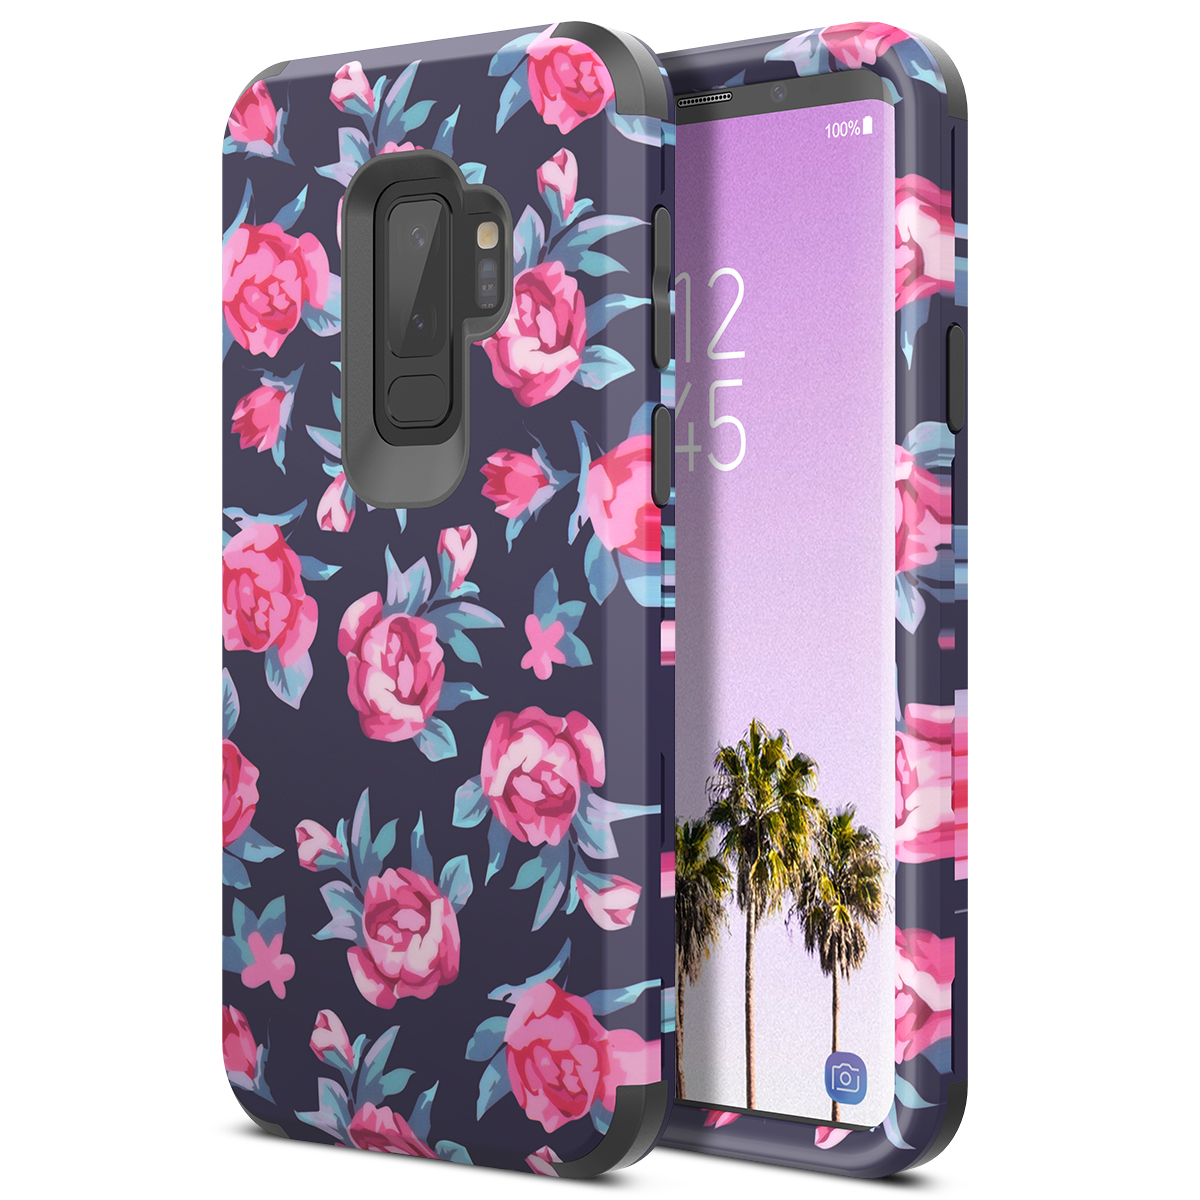 Luxury 3 In 1 Hard Case For Samsung Galaxy S9 Plus Case Flowers Bumper PC Silicone Shockproof Cover For Samsung Note 8 9 Case